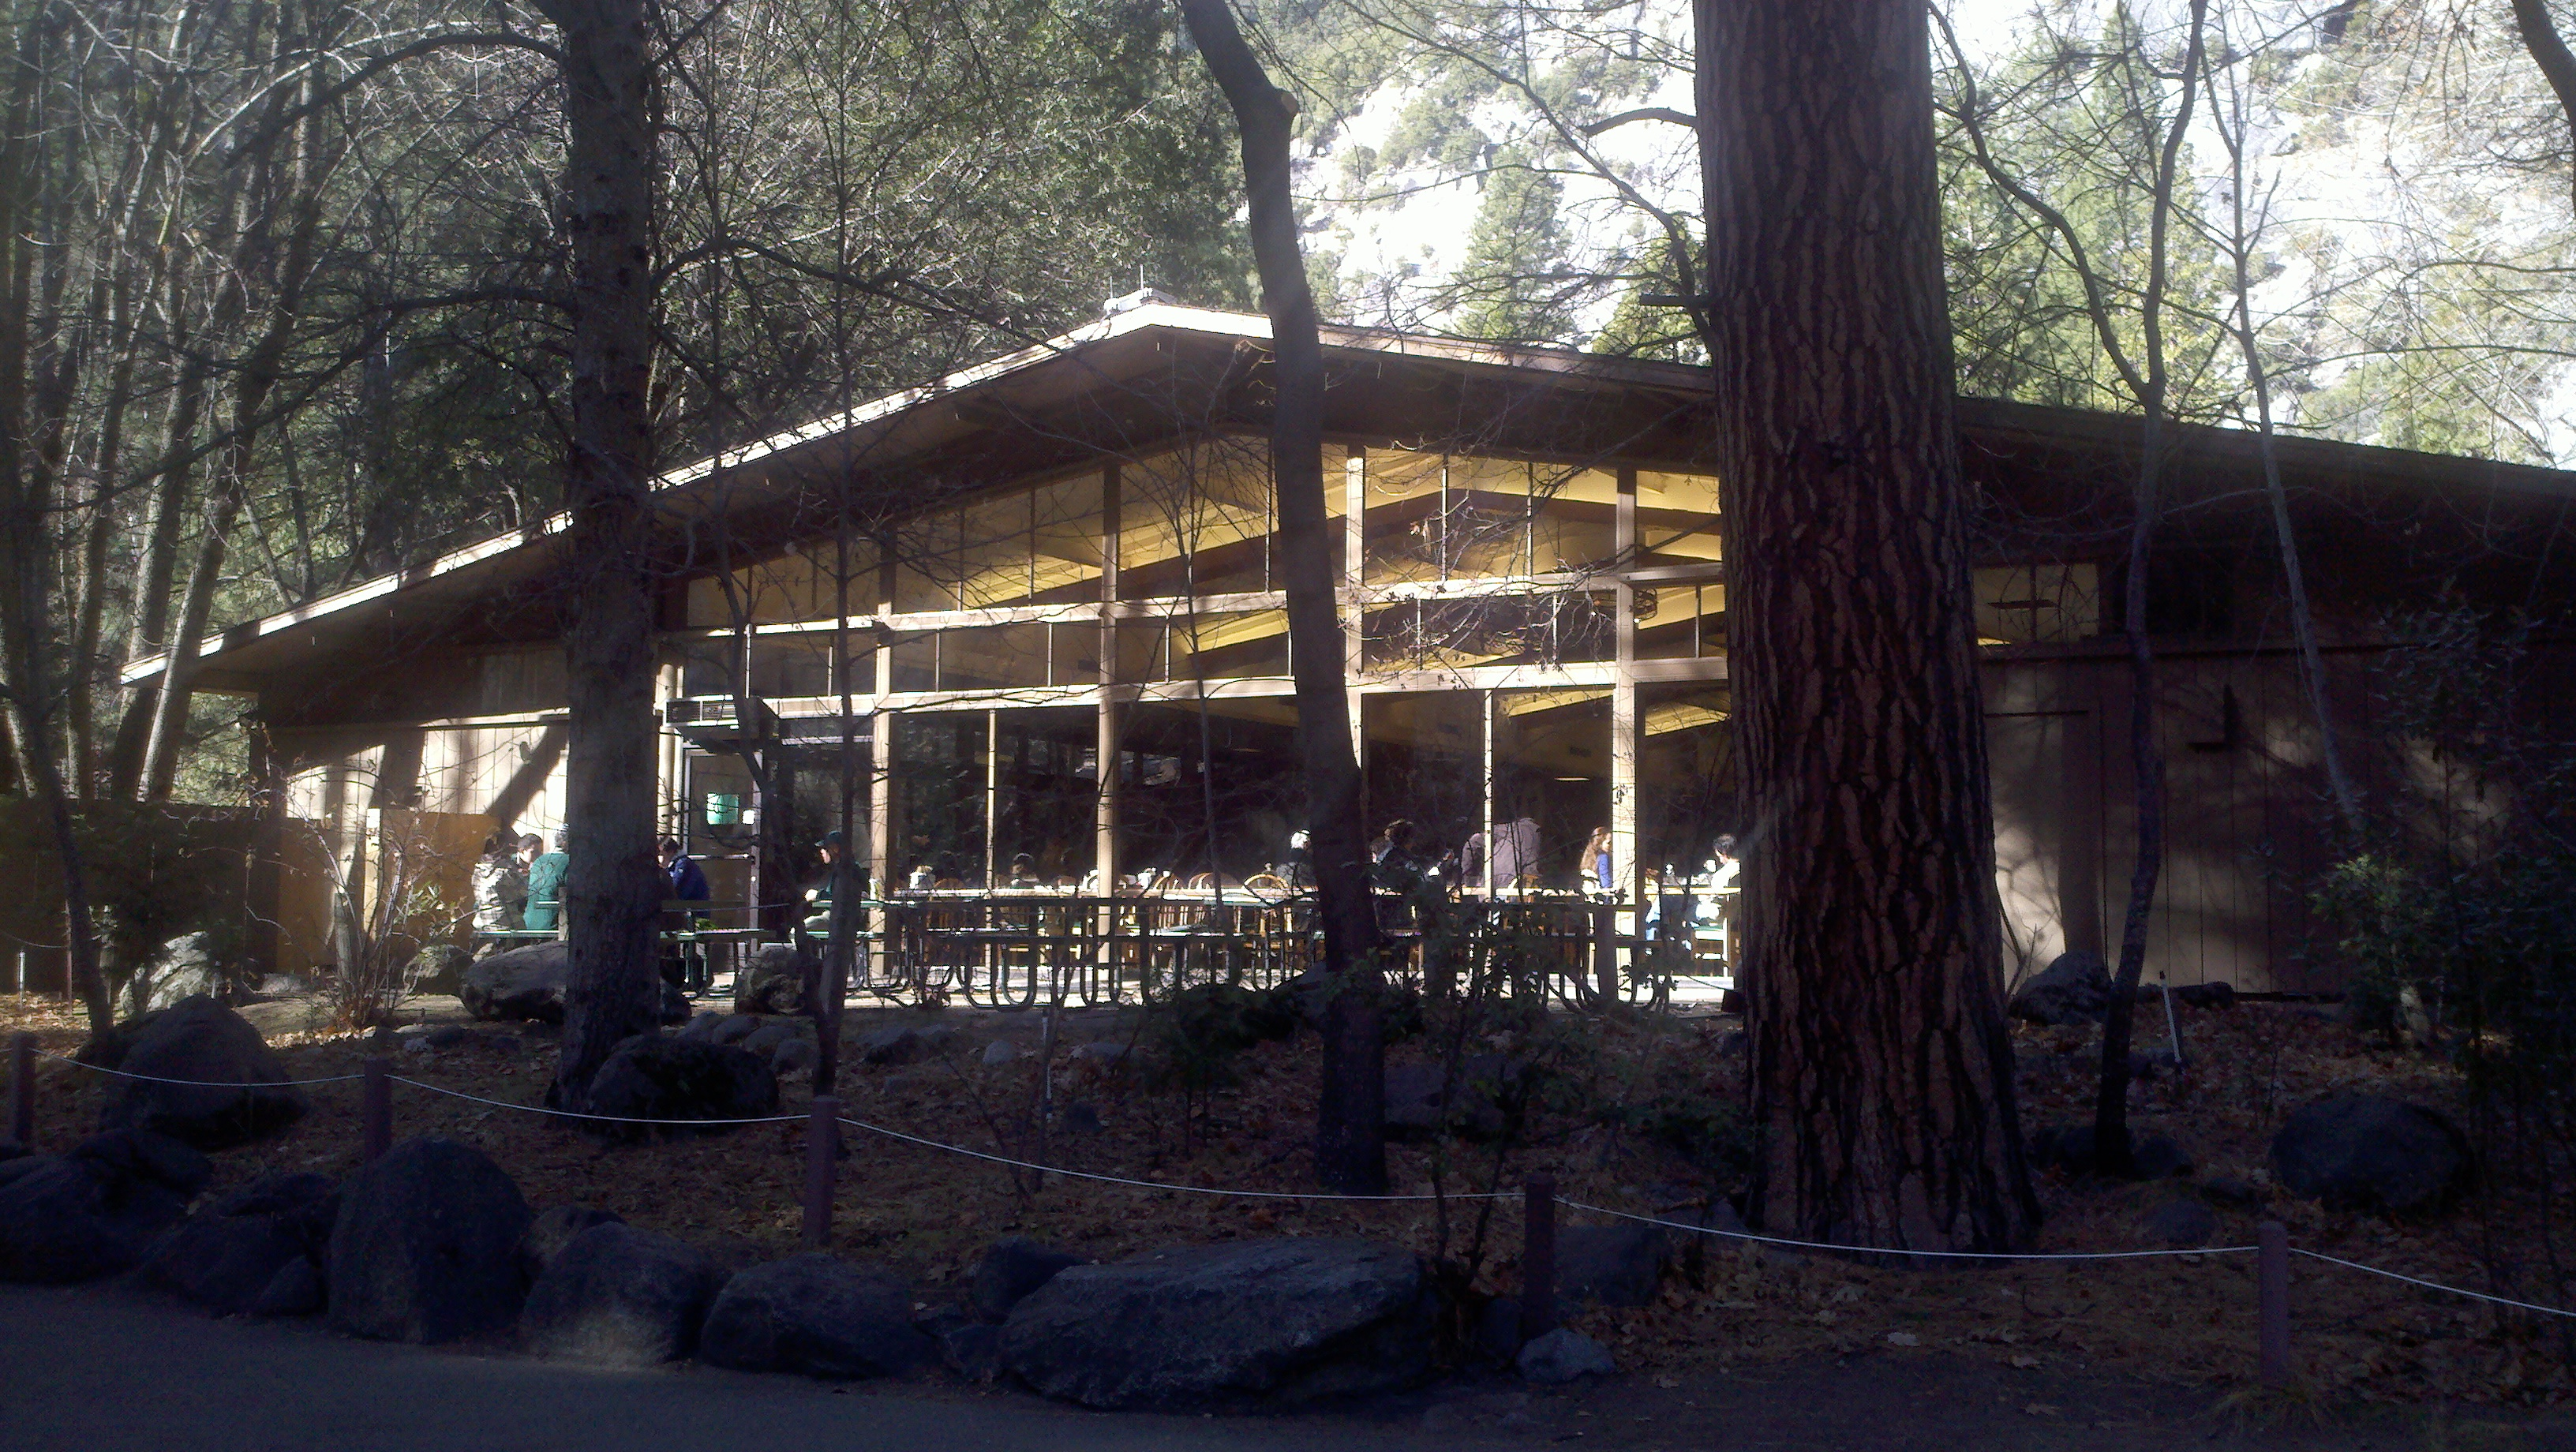 historic construction dsc wood structural park through the from yosemite rehabilitations we of cabins curry completed to portfolio national and treeline village in